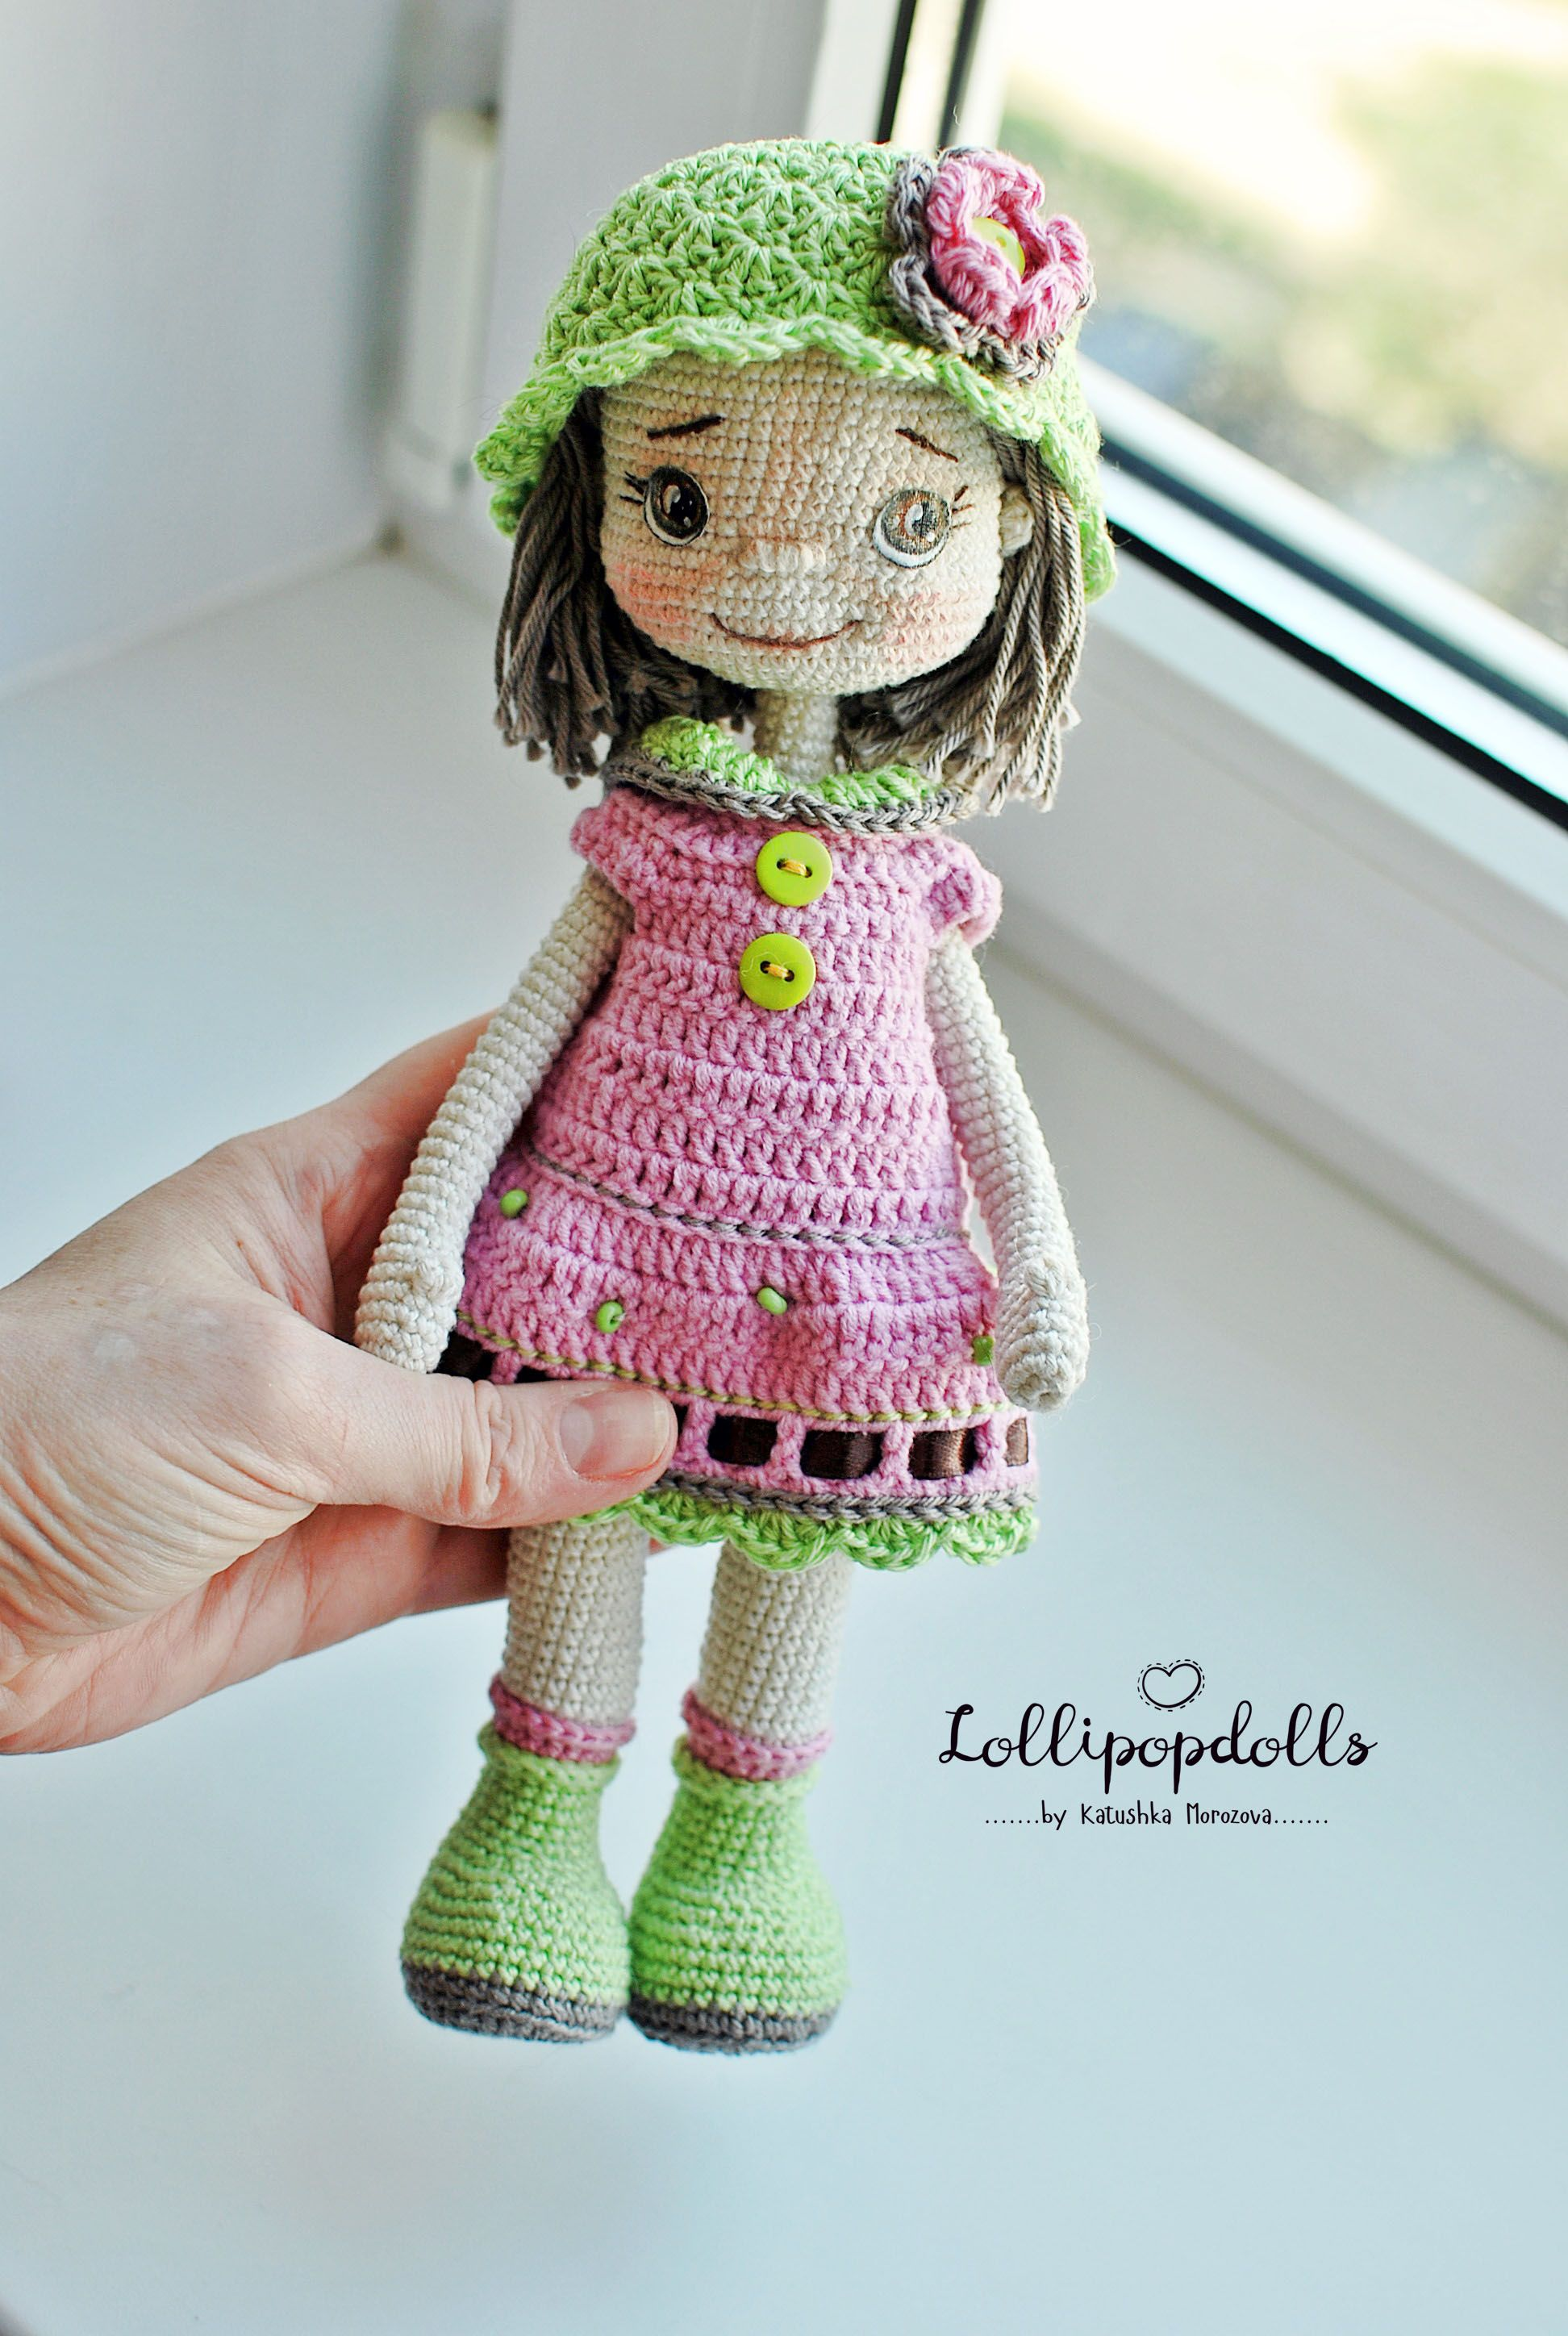 Amigurumi Doll Free Pattern – 2019 | Crochet dolls free patterns ... | 2896x1944